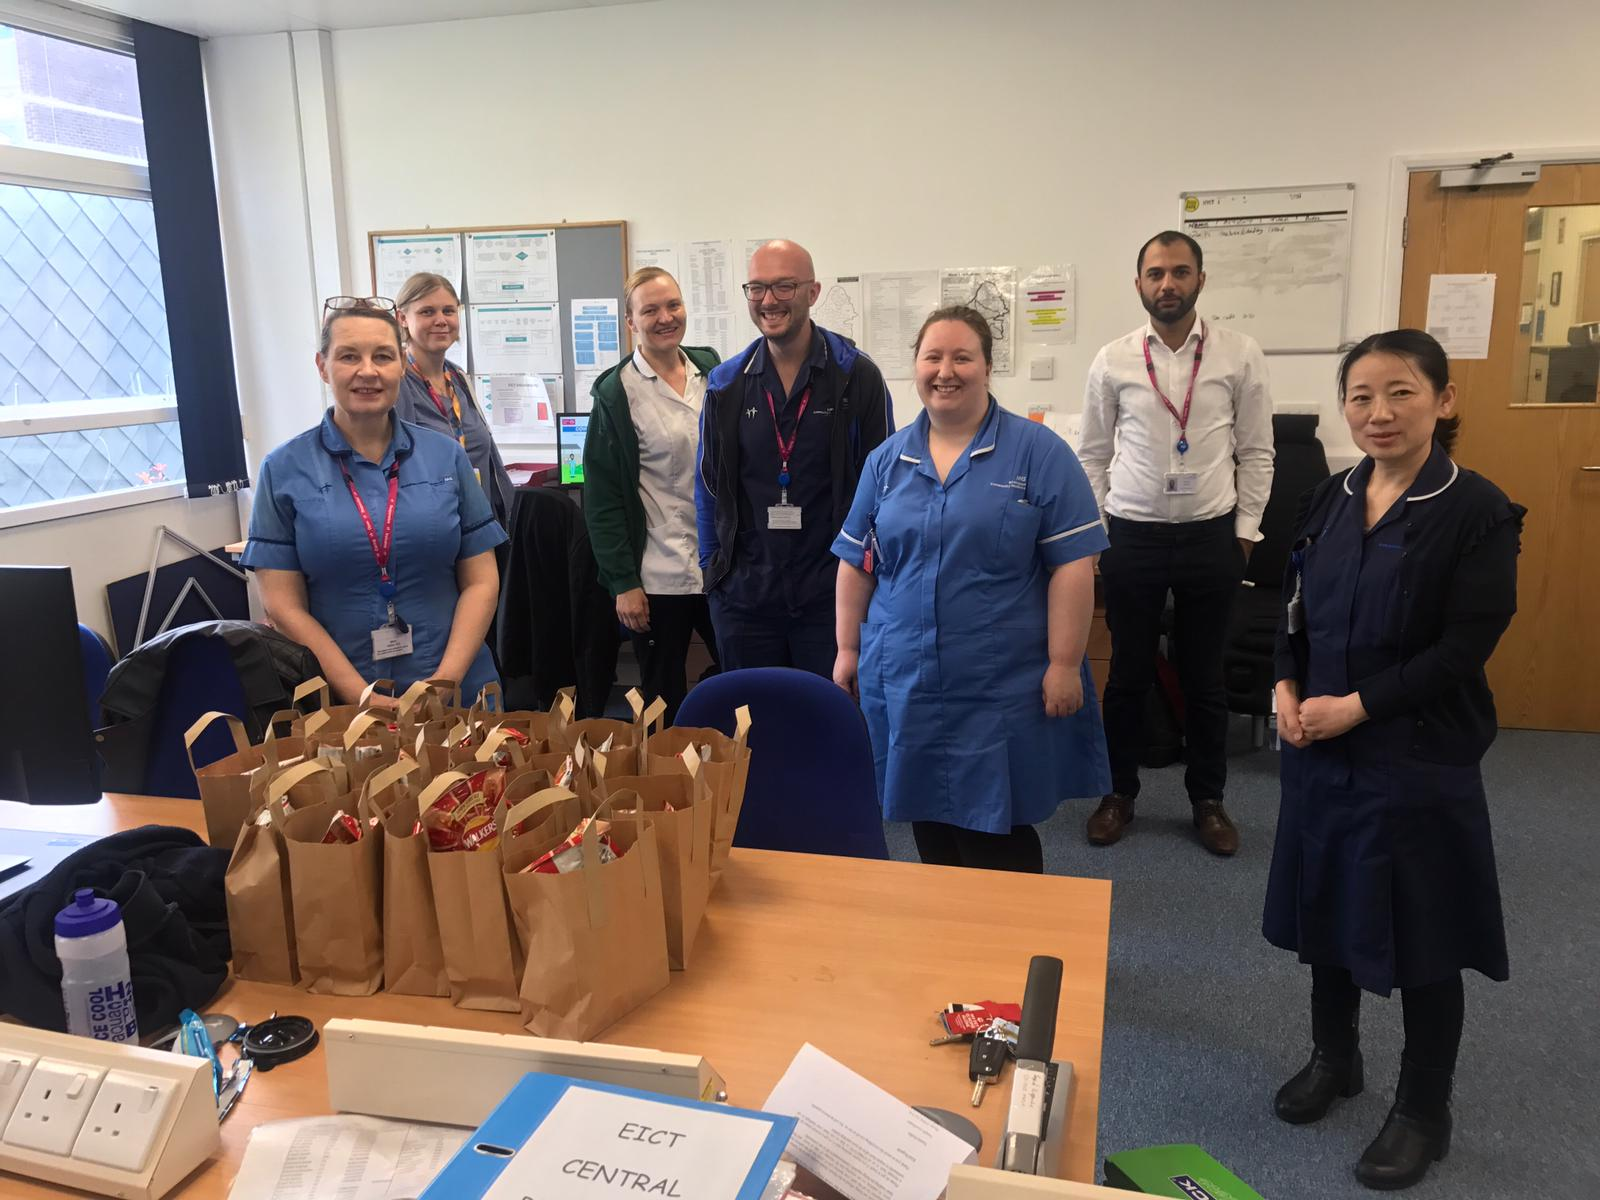 BAPS in Birmingham has made delivery to staff at Moseley Hospital